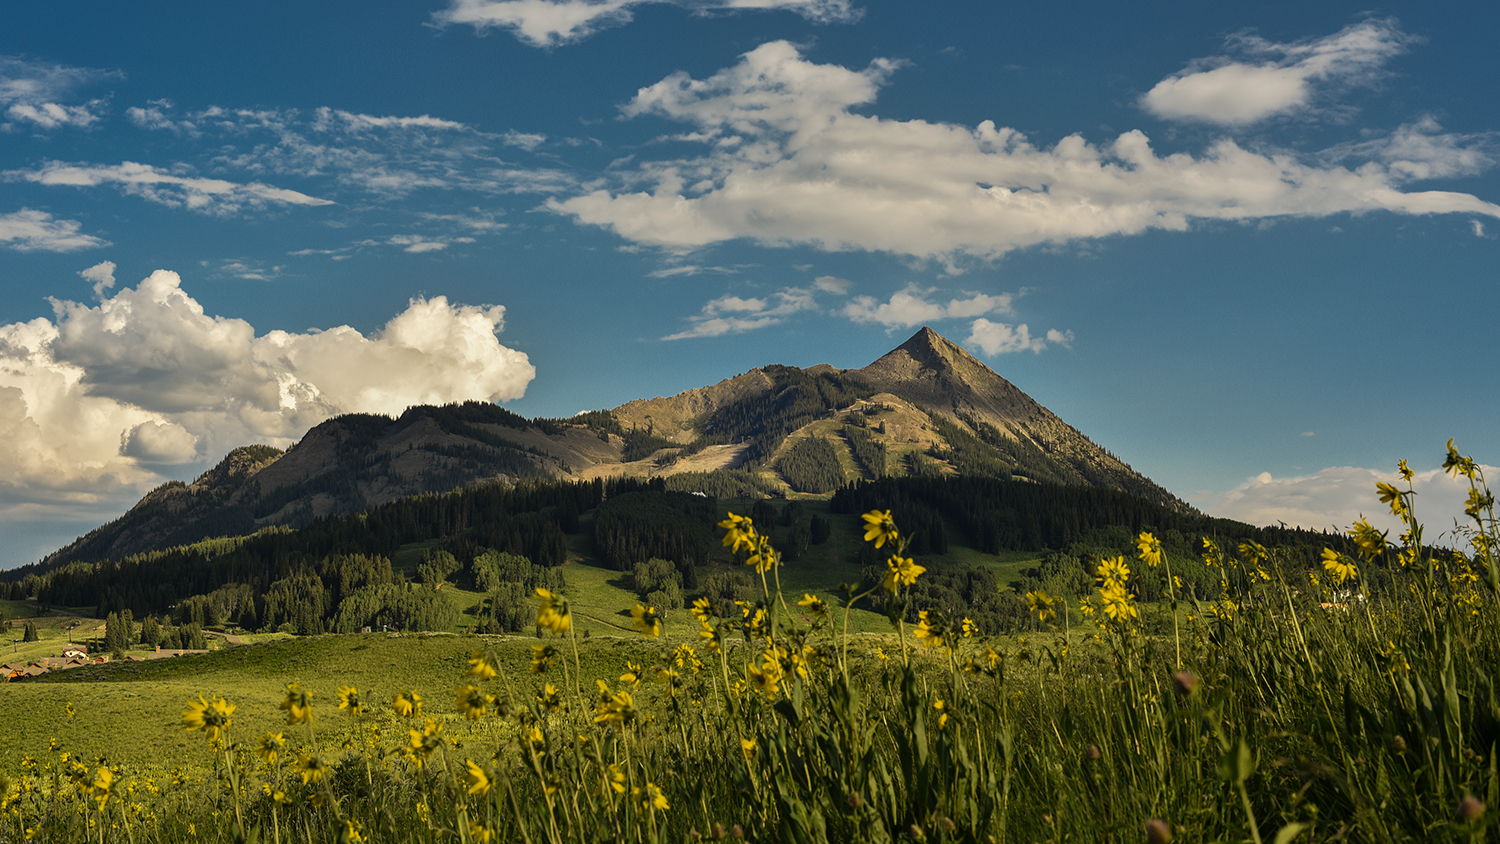 Mount Crested Butte, Colorado 4k Photo Timelapse